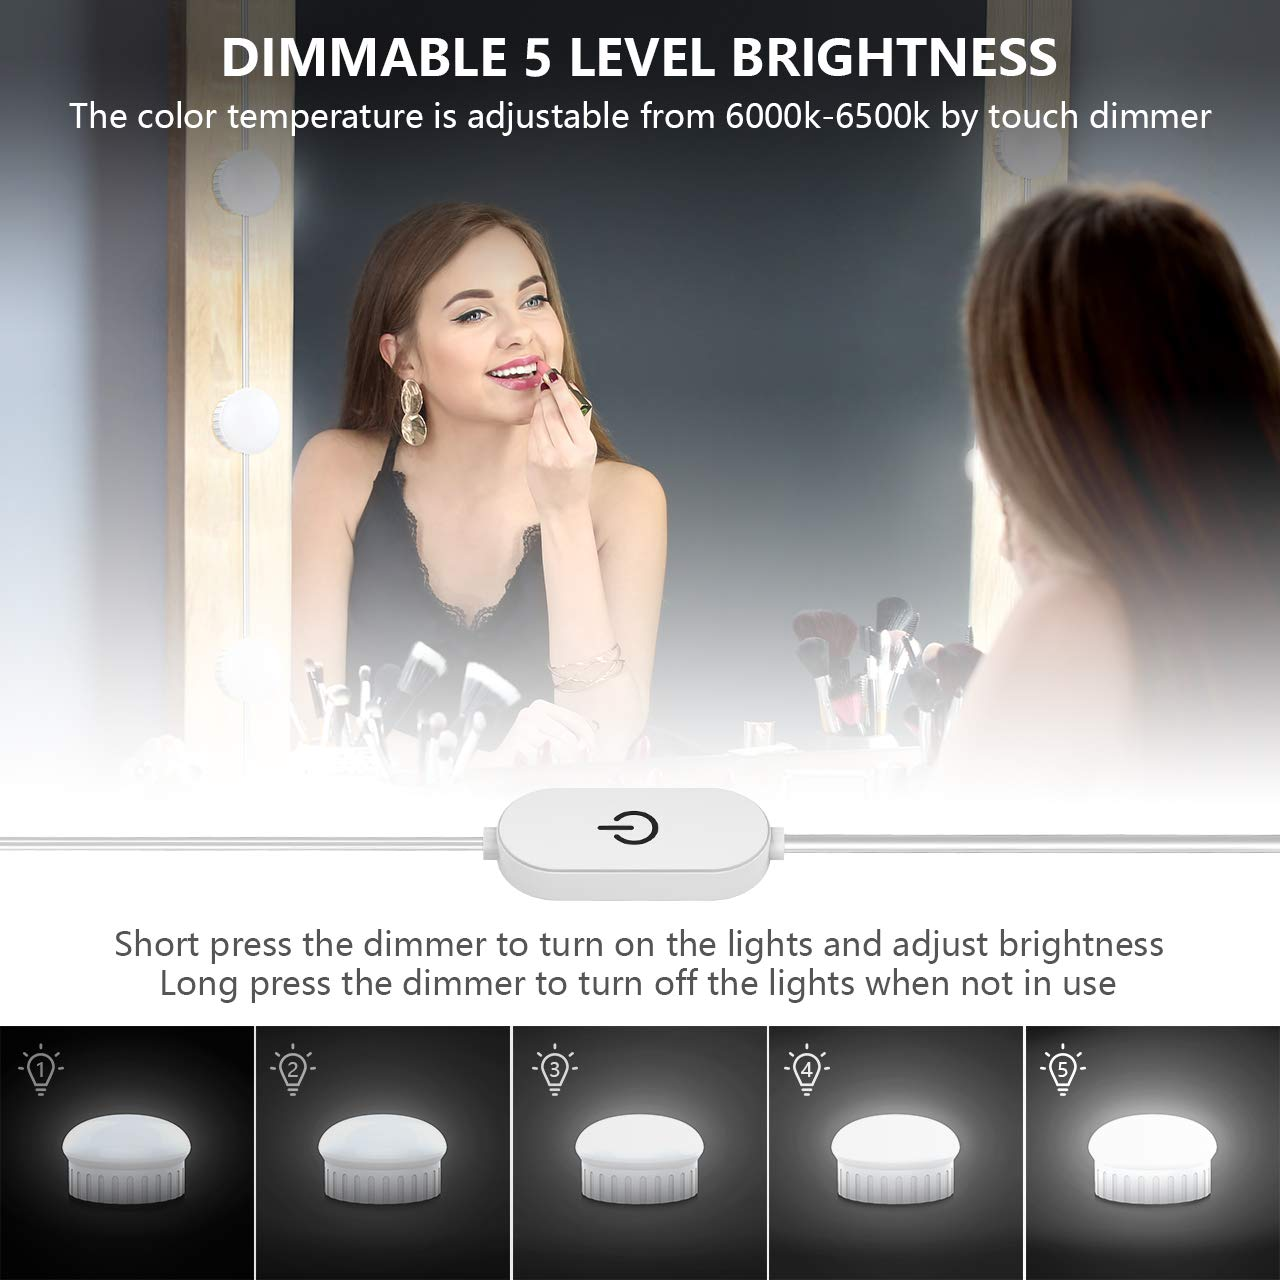 Nicewell Vanity Mirror Lights, Hollywood Style LED Makeup Mirror Lights Kit with 10 Dimmable Daylight White Light Bulbs for Vanity Table and Bathroom Dressing Room Mirror(Mirror not Included) by Nicewell (Image #2)